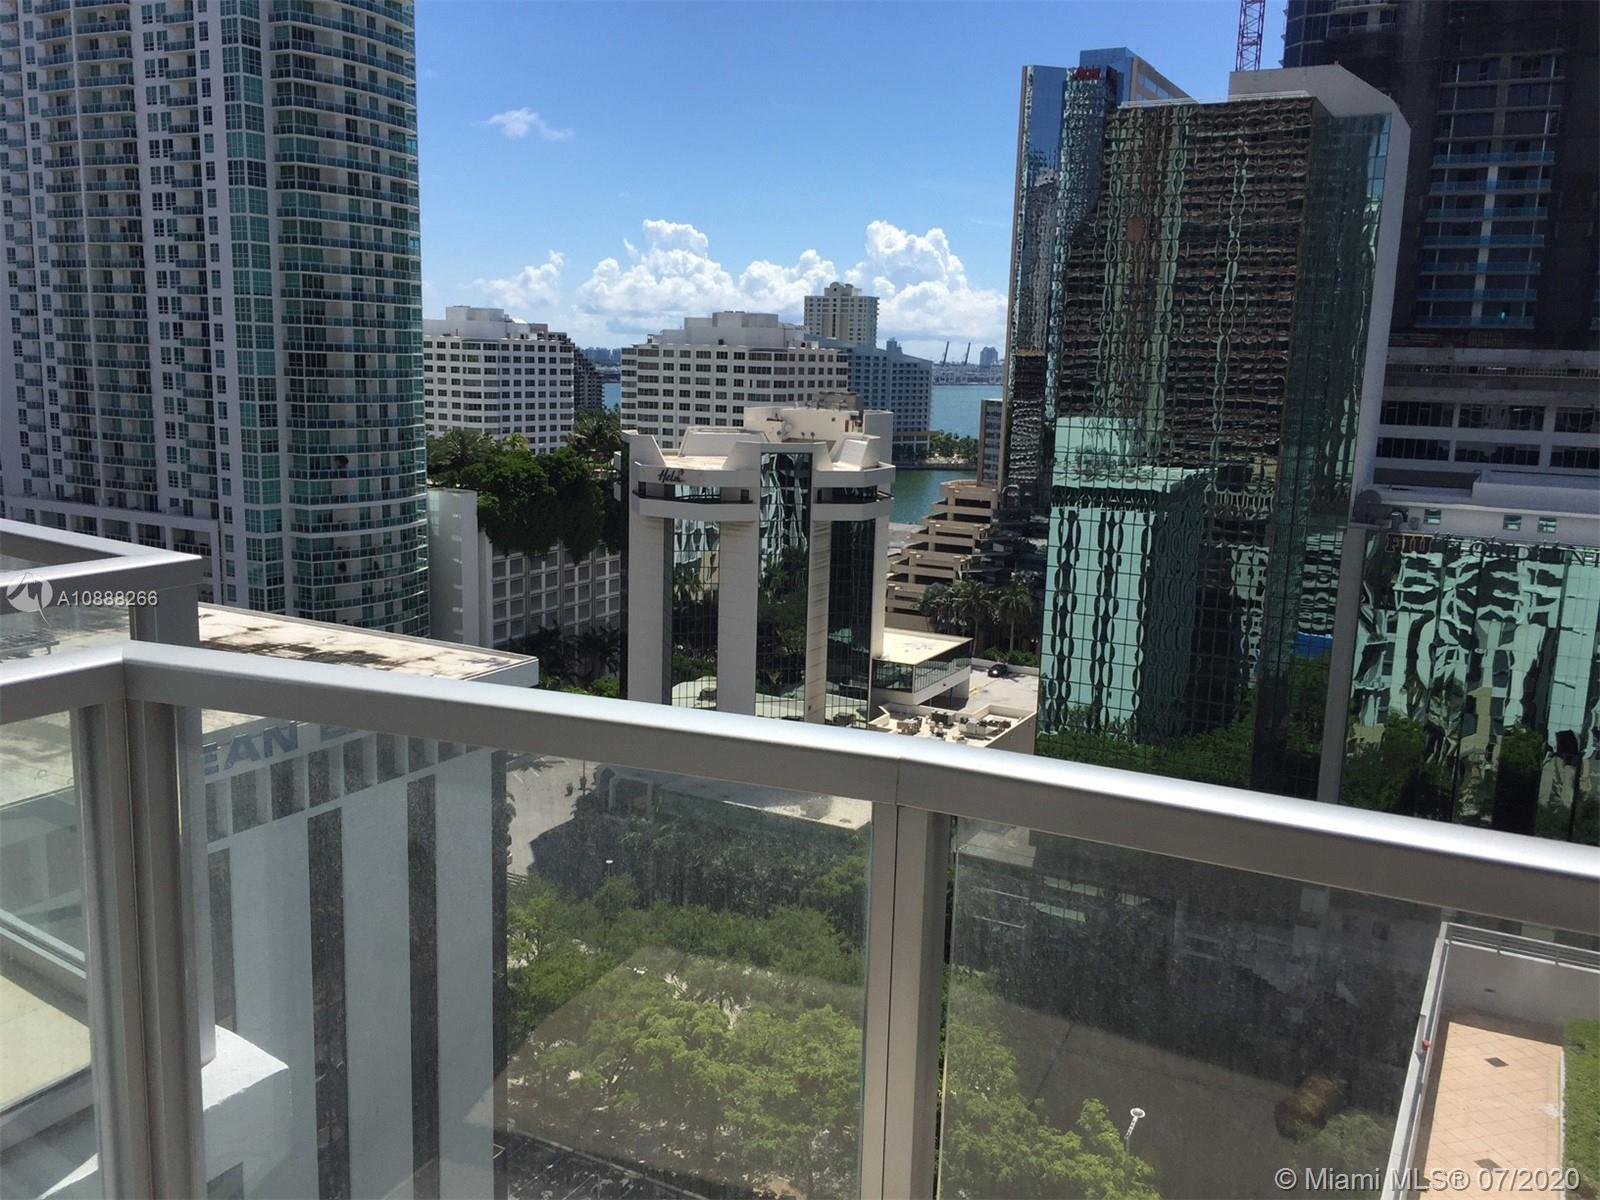 Fully furnished and ready to occupy studio in the heart of Brickell. Enjoy a full size kitchen & bathroom.